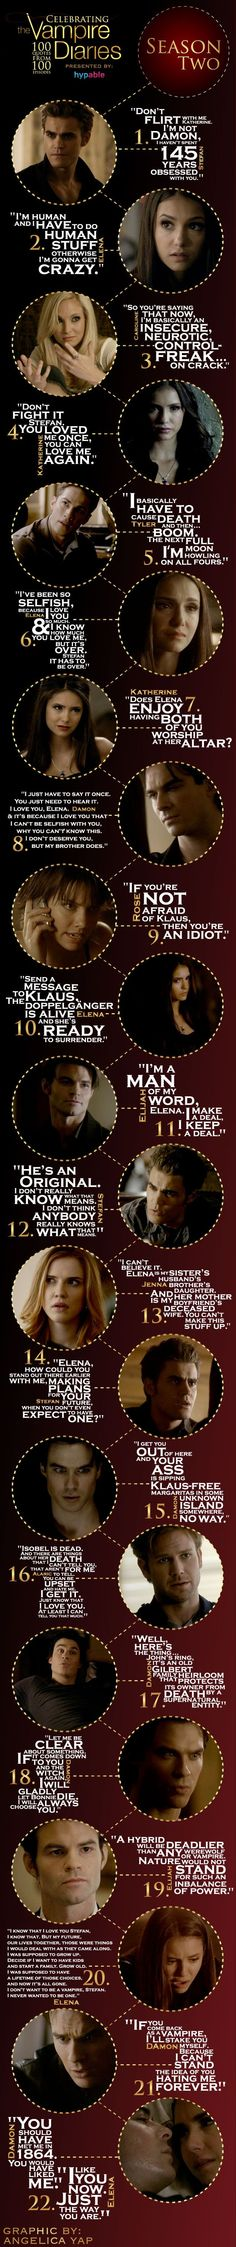 Famous TVD Quotes from Season 2